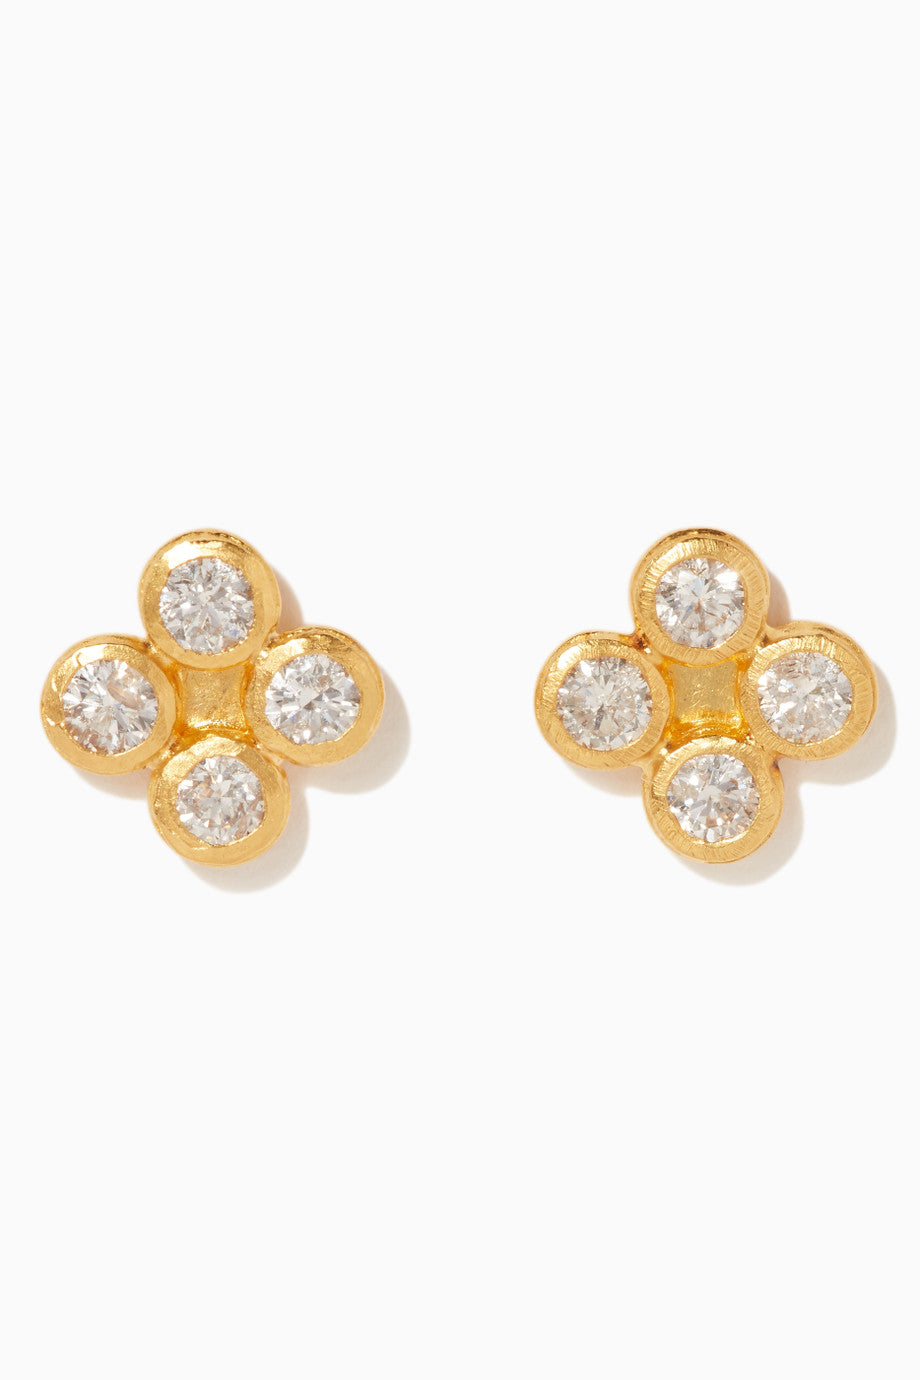 24kt Gold Diamond Button Earrings